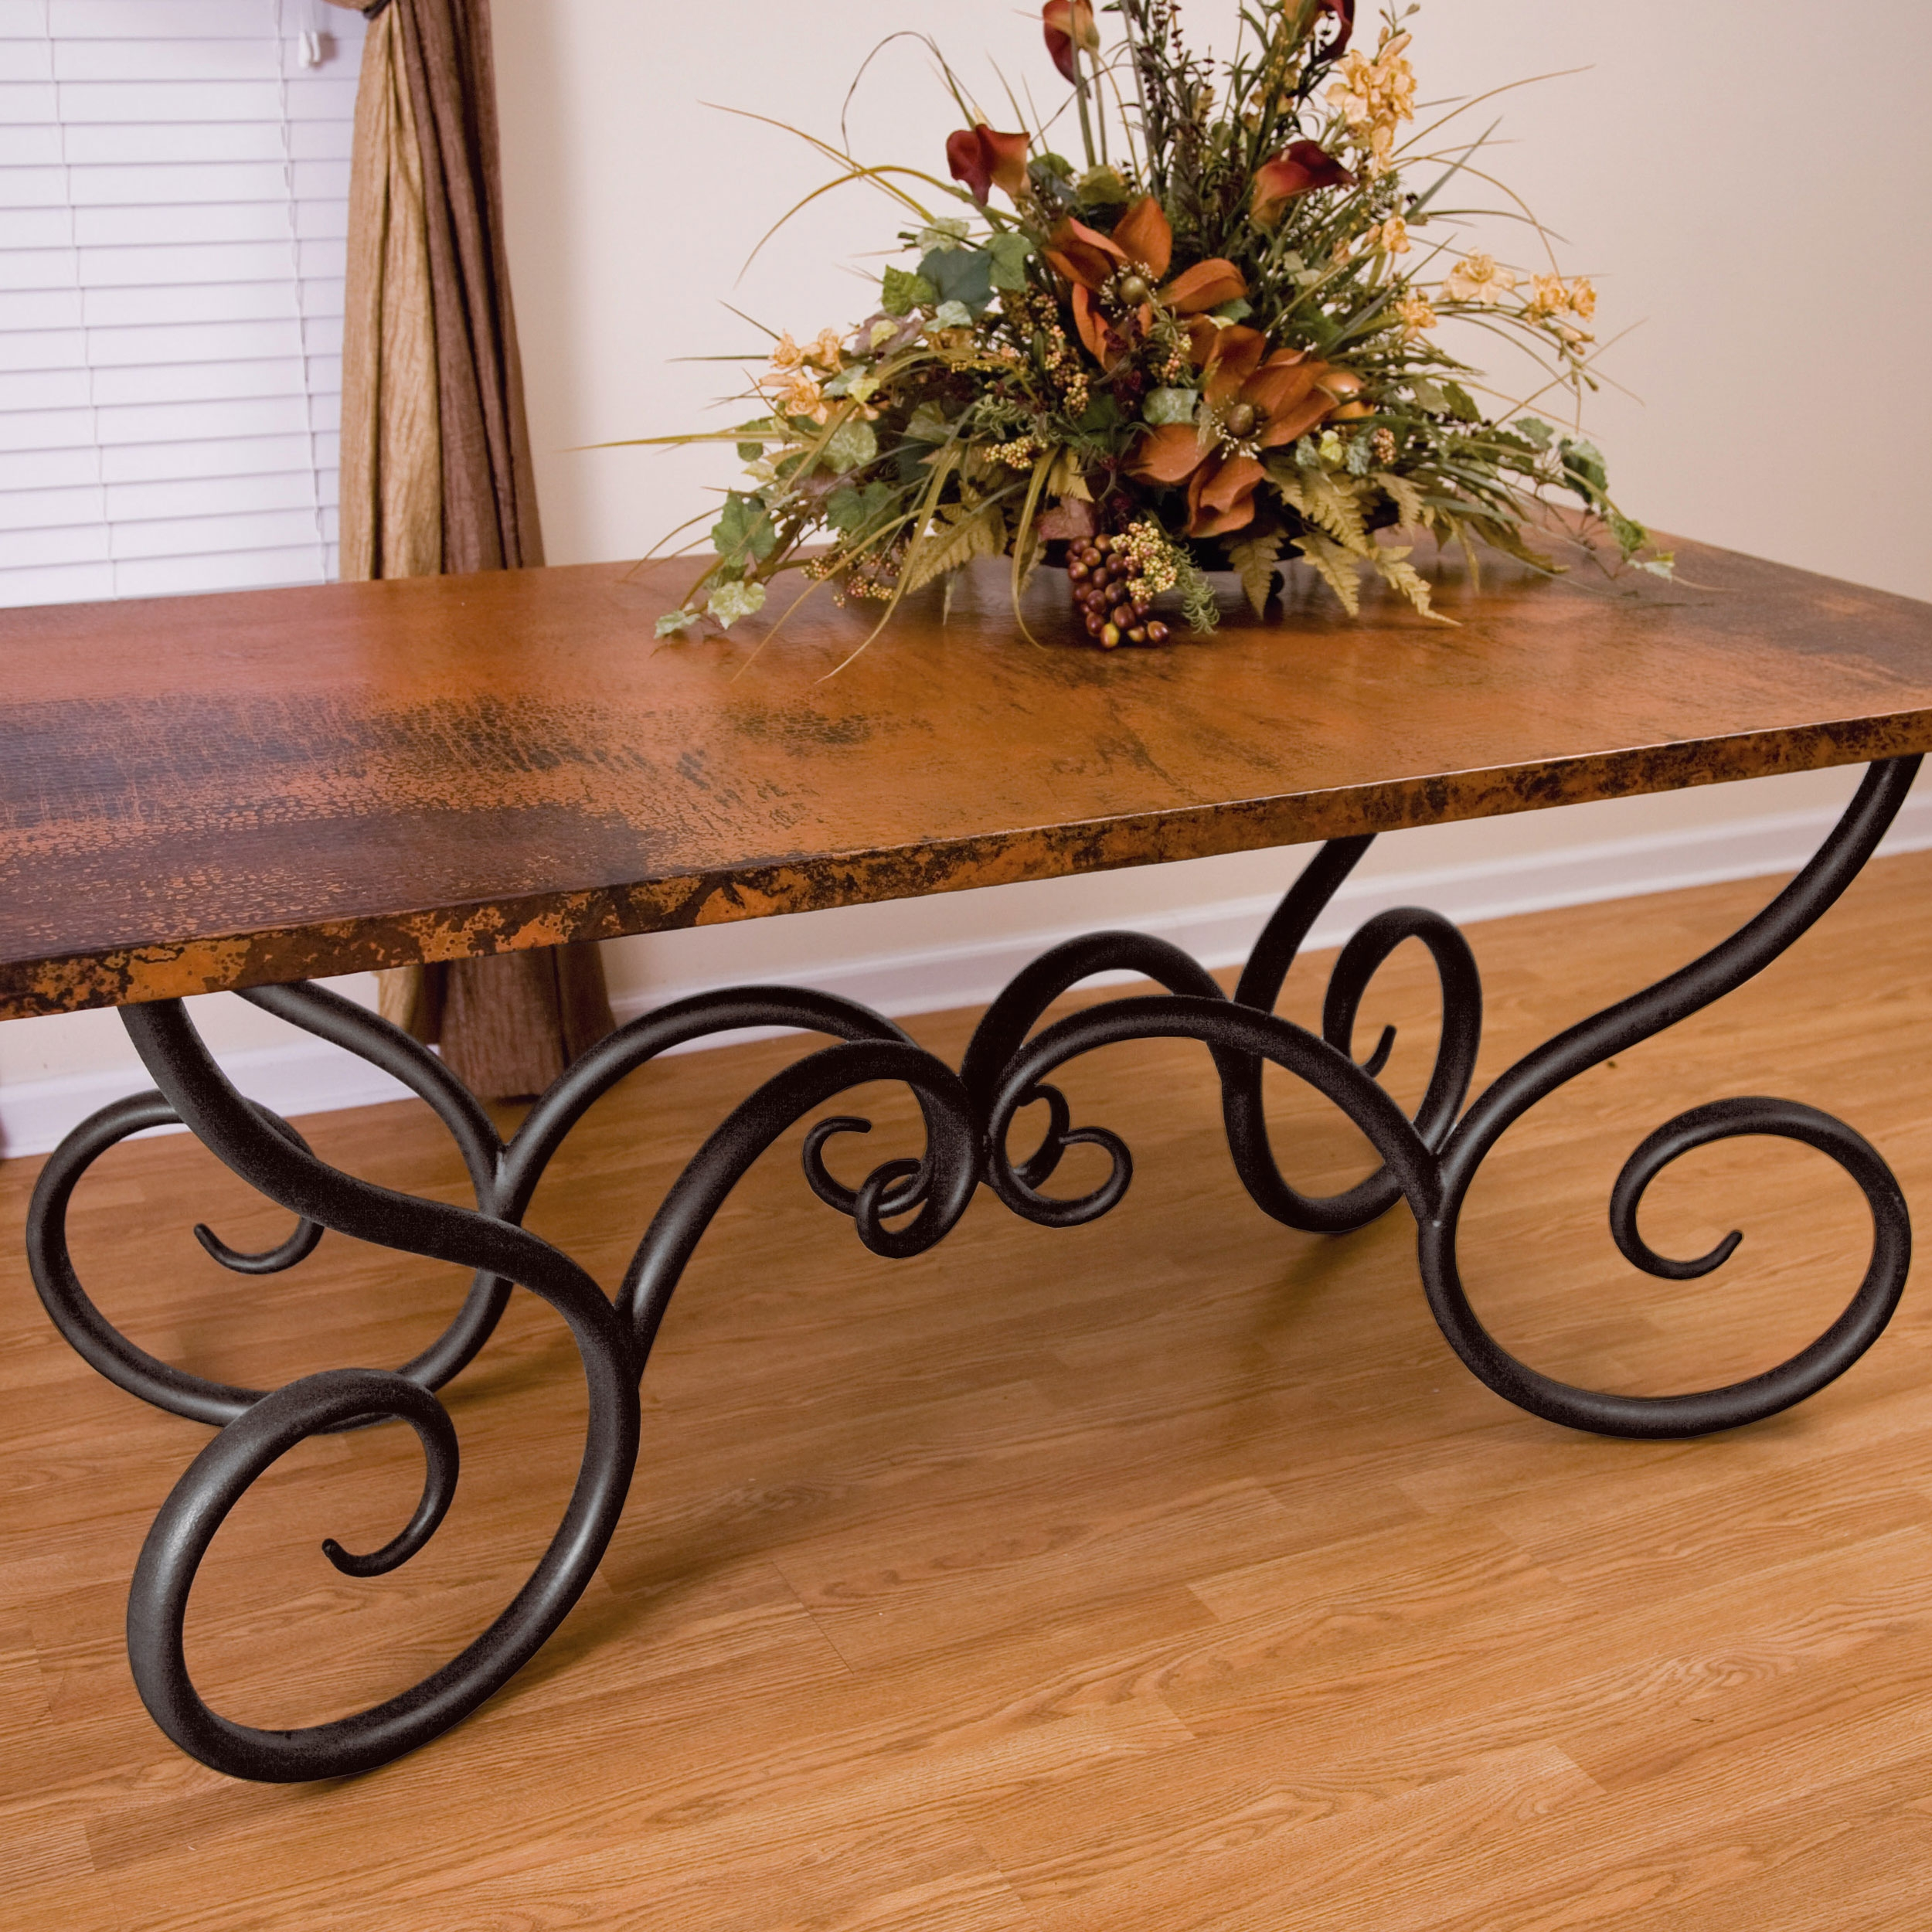 Wondrous Milan Rectangle Dining Table Base Only Home Interior And Landscaping Spoatsignezvosmurscom